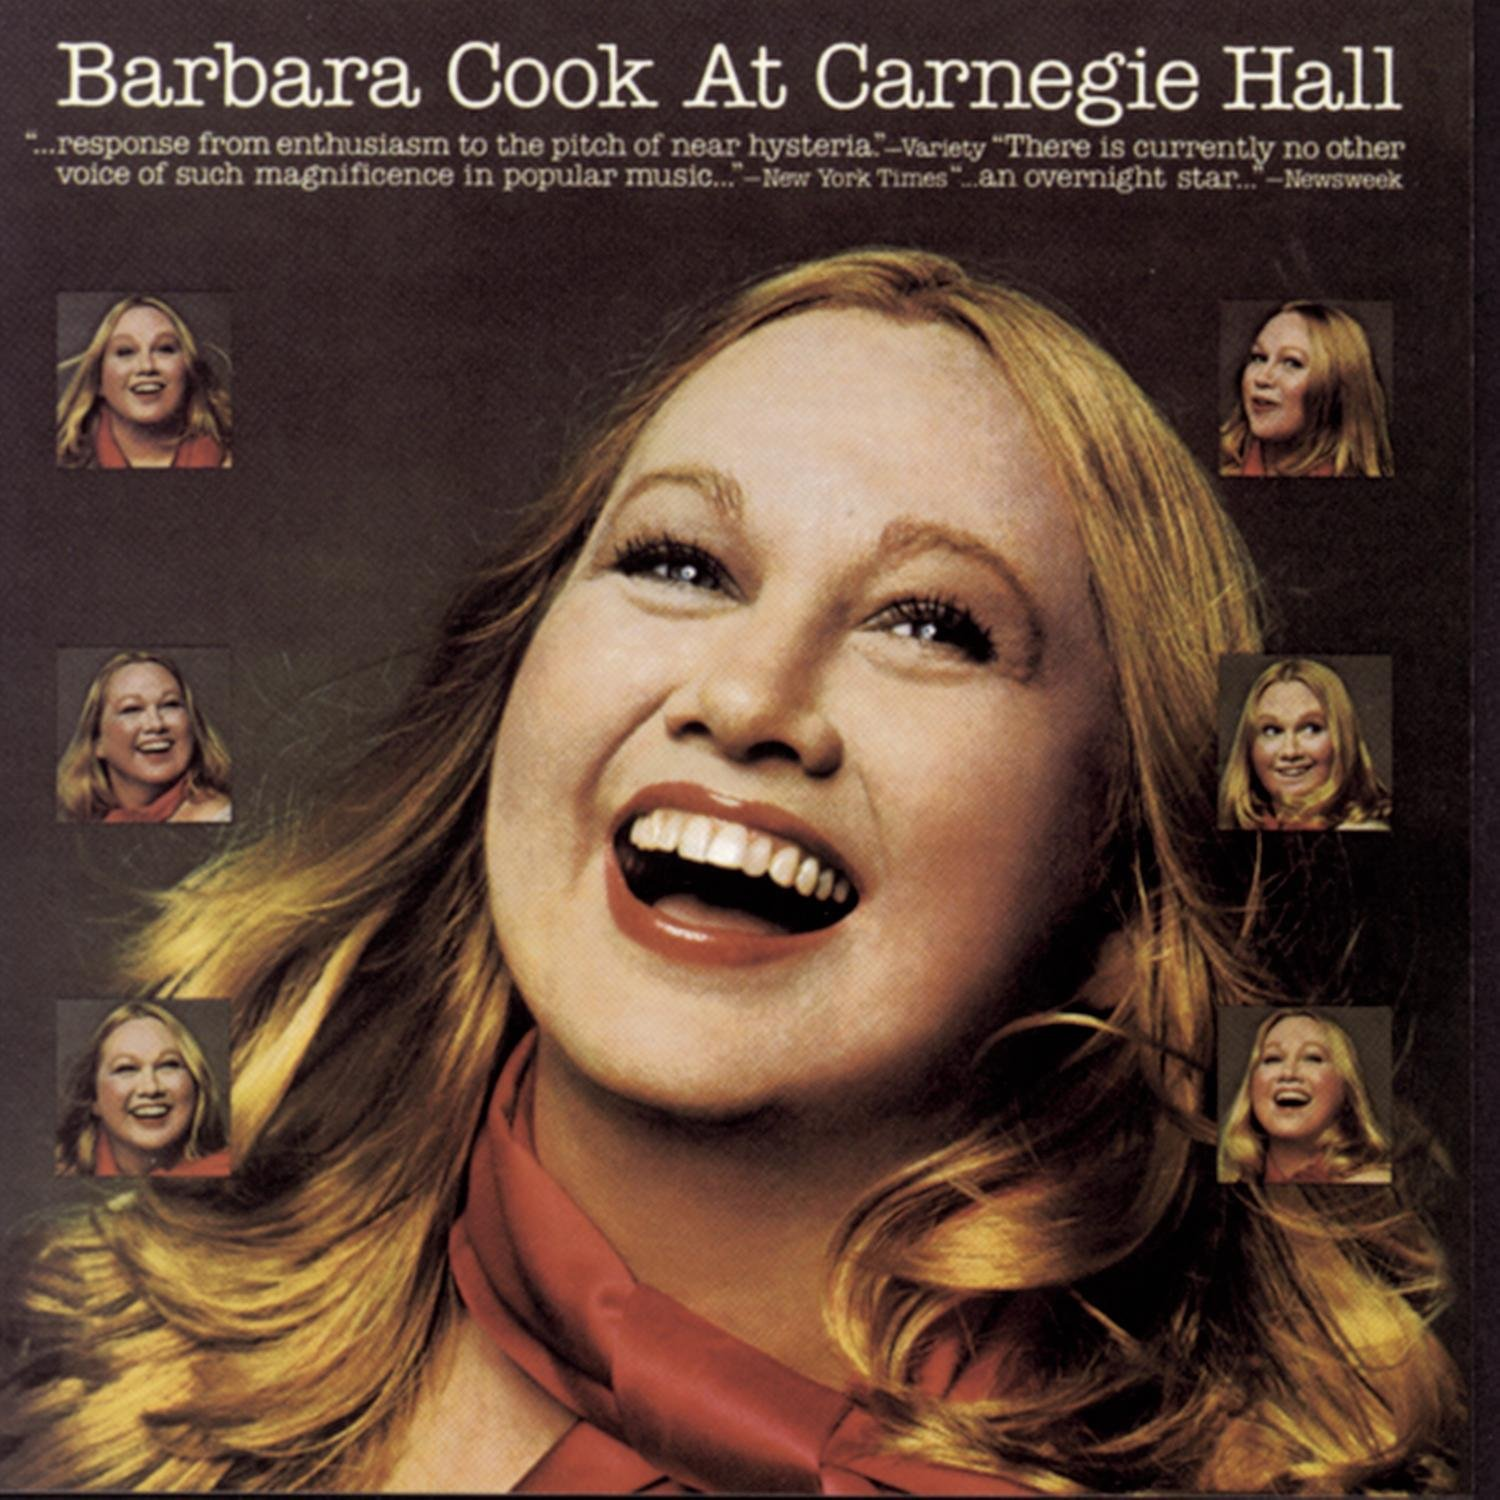 Barbara Cook at Carnegie Hall by Masterworks Broadway